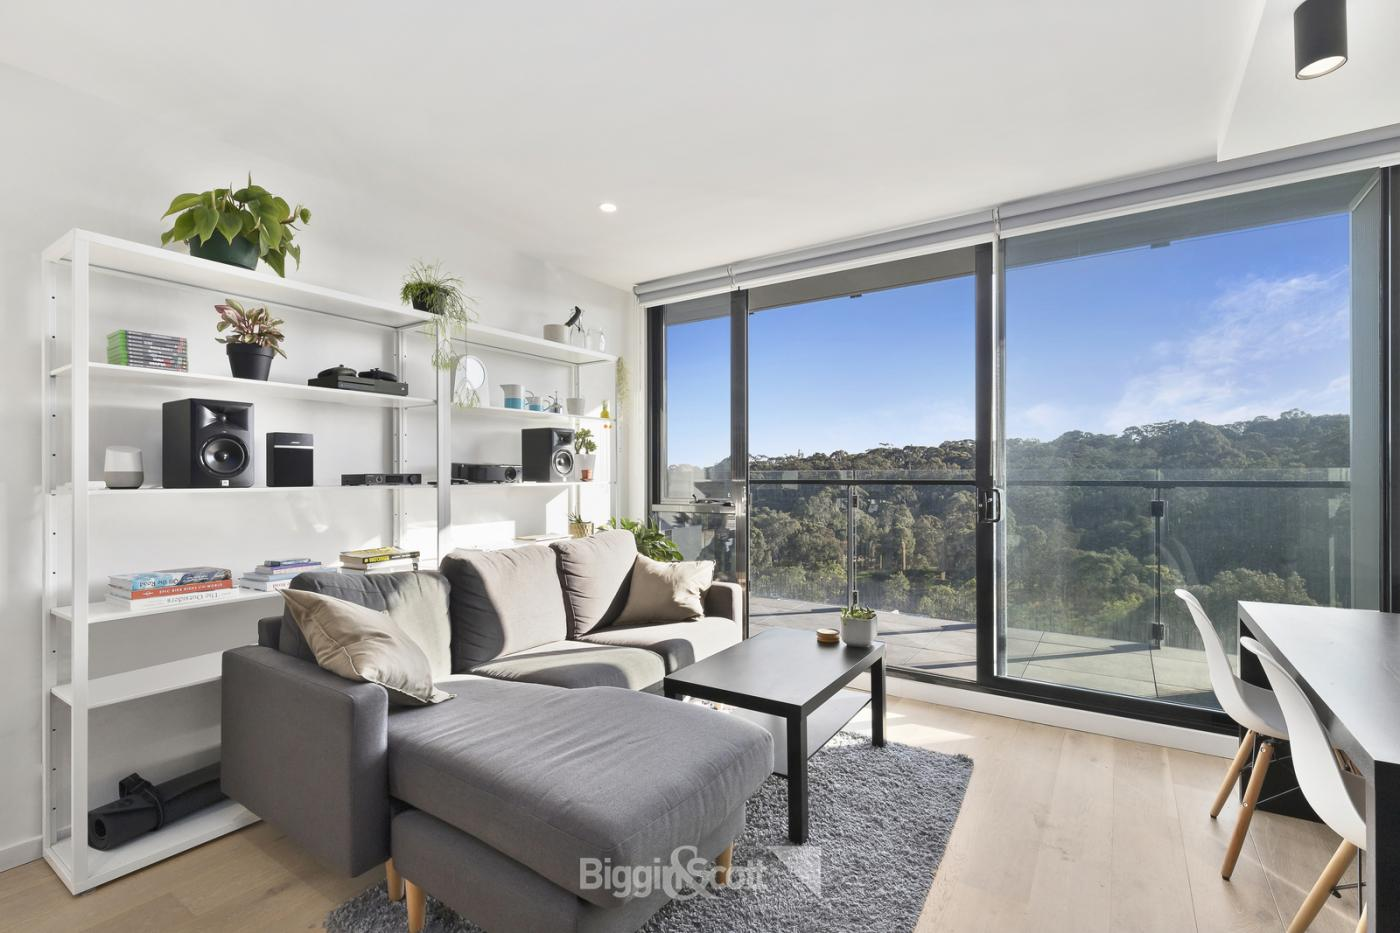 20-shamrock-street-abbotsford-vic-3067-real-estate-photo-1-xlarge-12072354